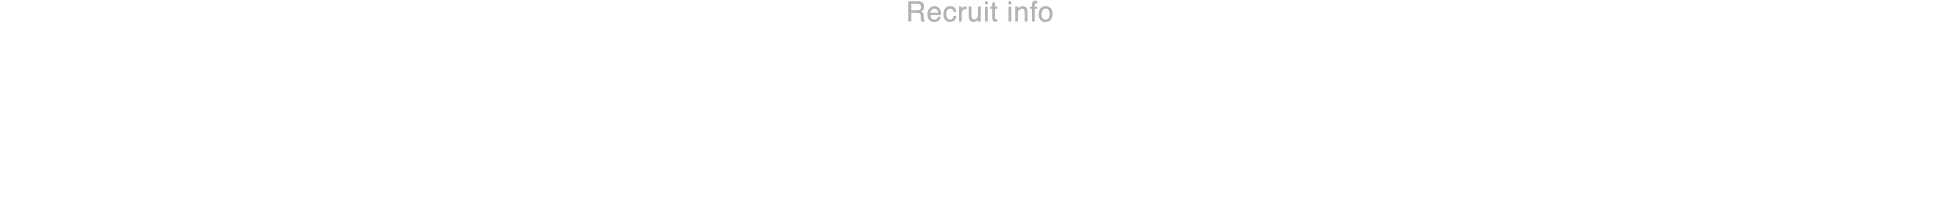 募集要項 Recruit info